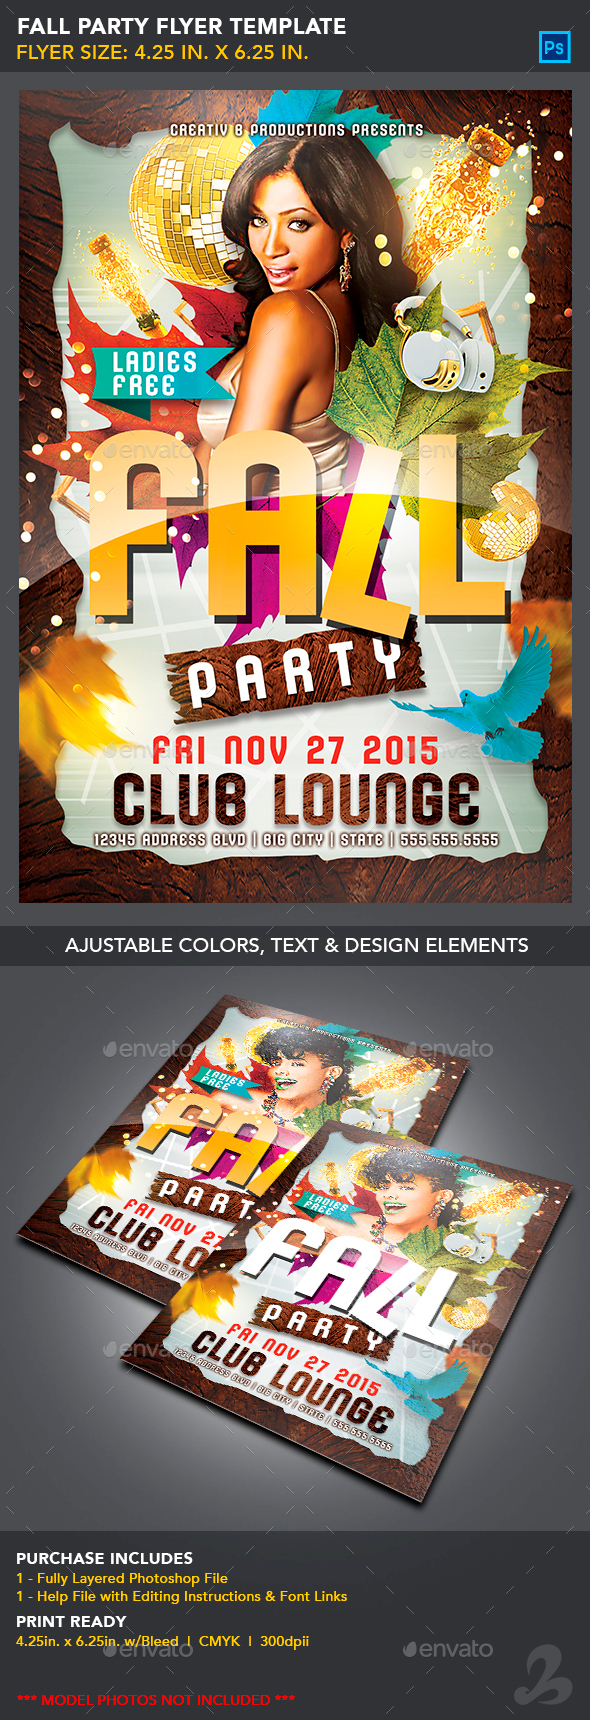 Fall Party Flyer Template - Clubs & Parties Events